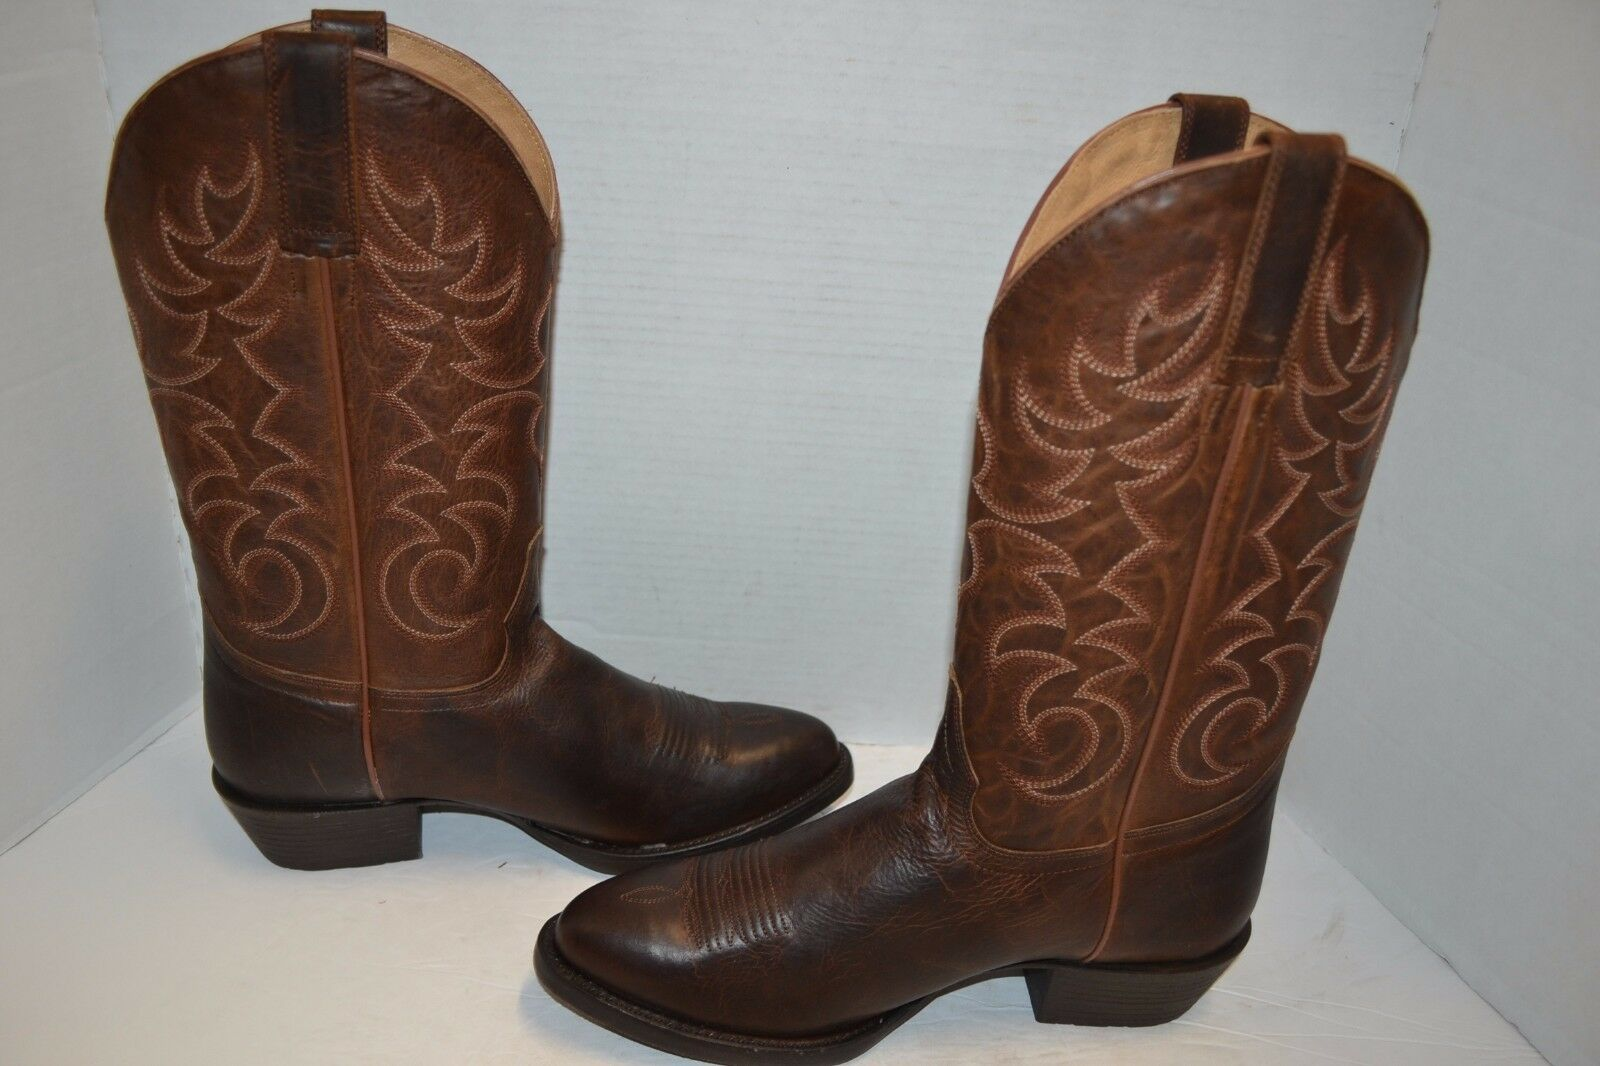 Cody James para hombre Performance 9.5 D Xero Gravity Bordado Performance hombre Vaquero Arranque bbmp - 03 bf79aa